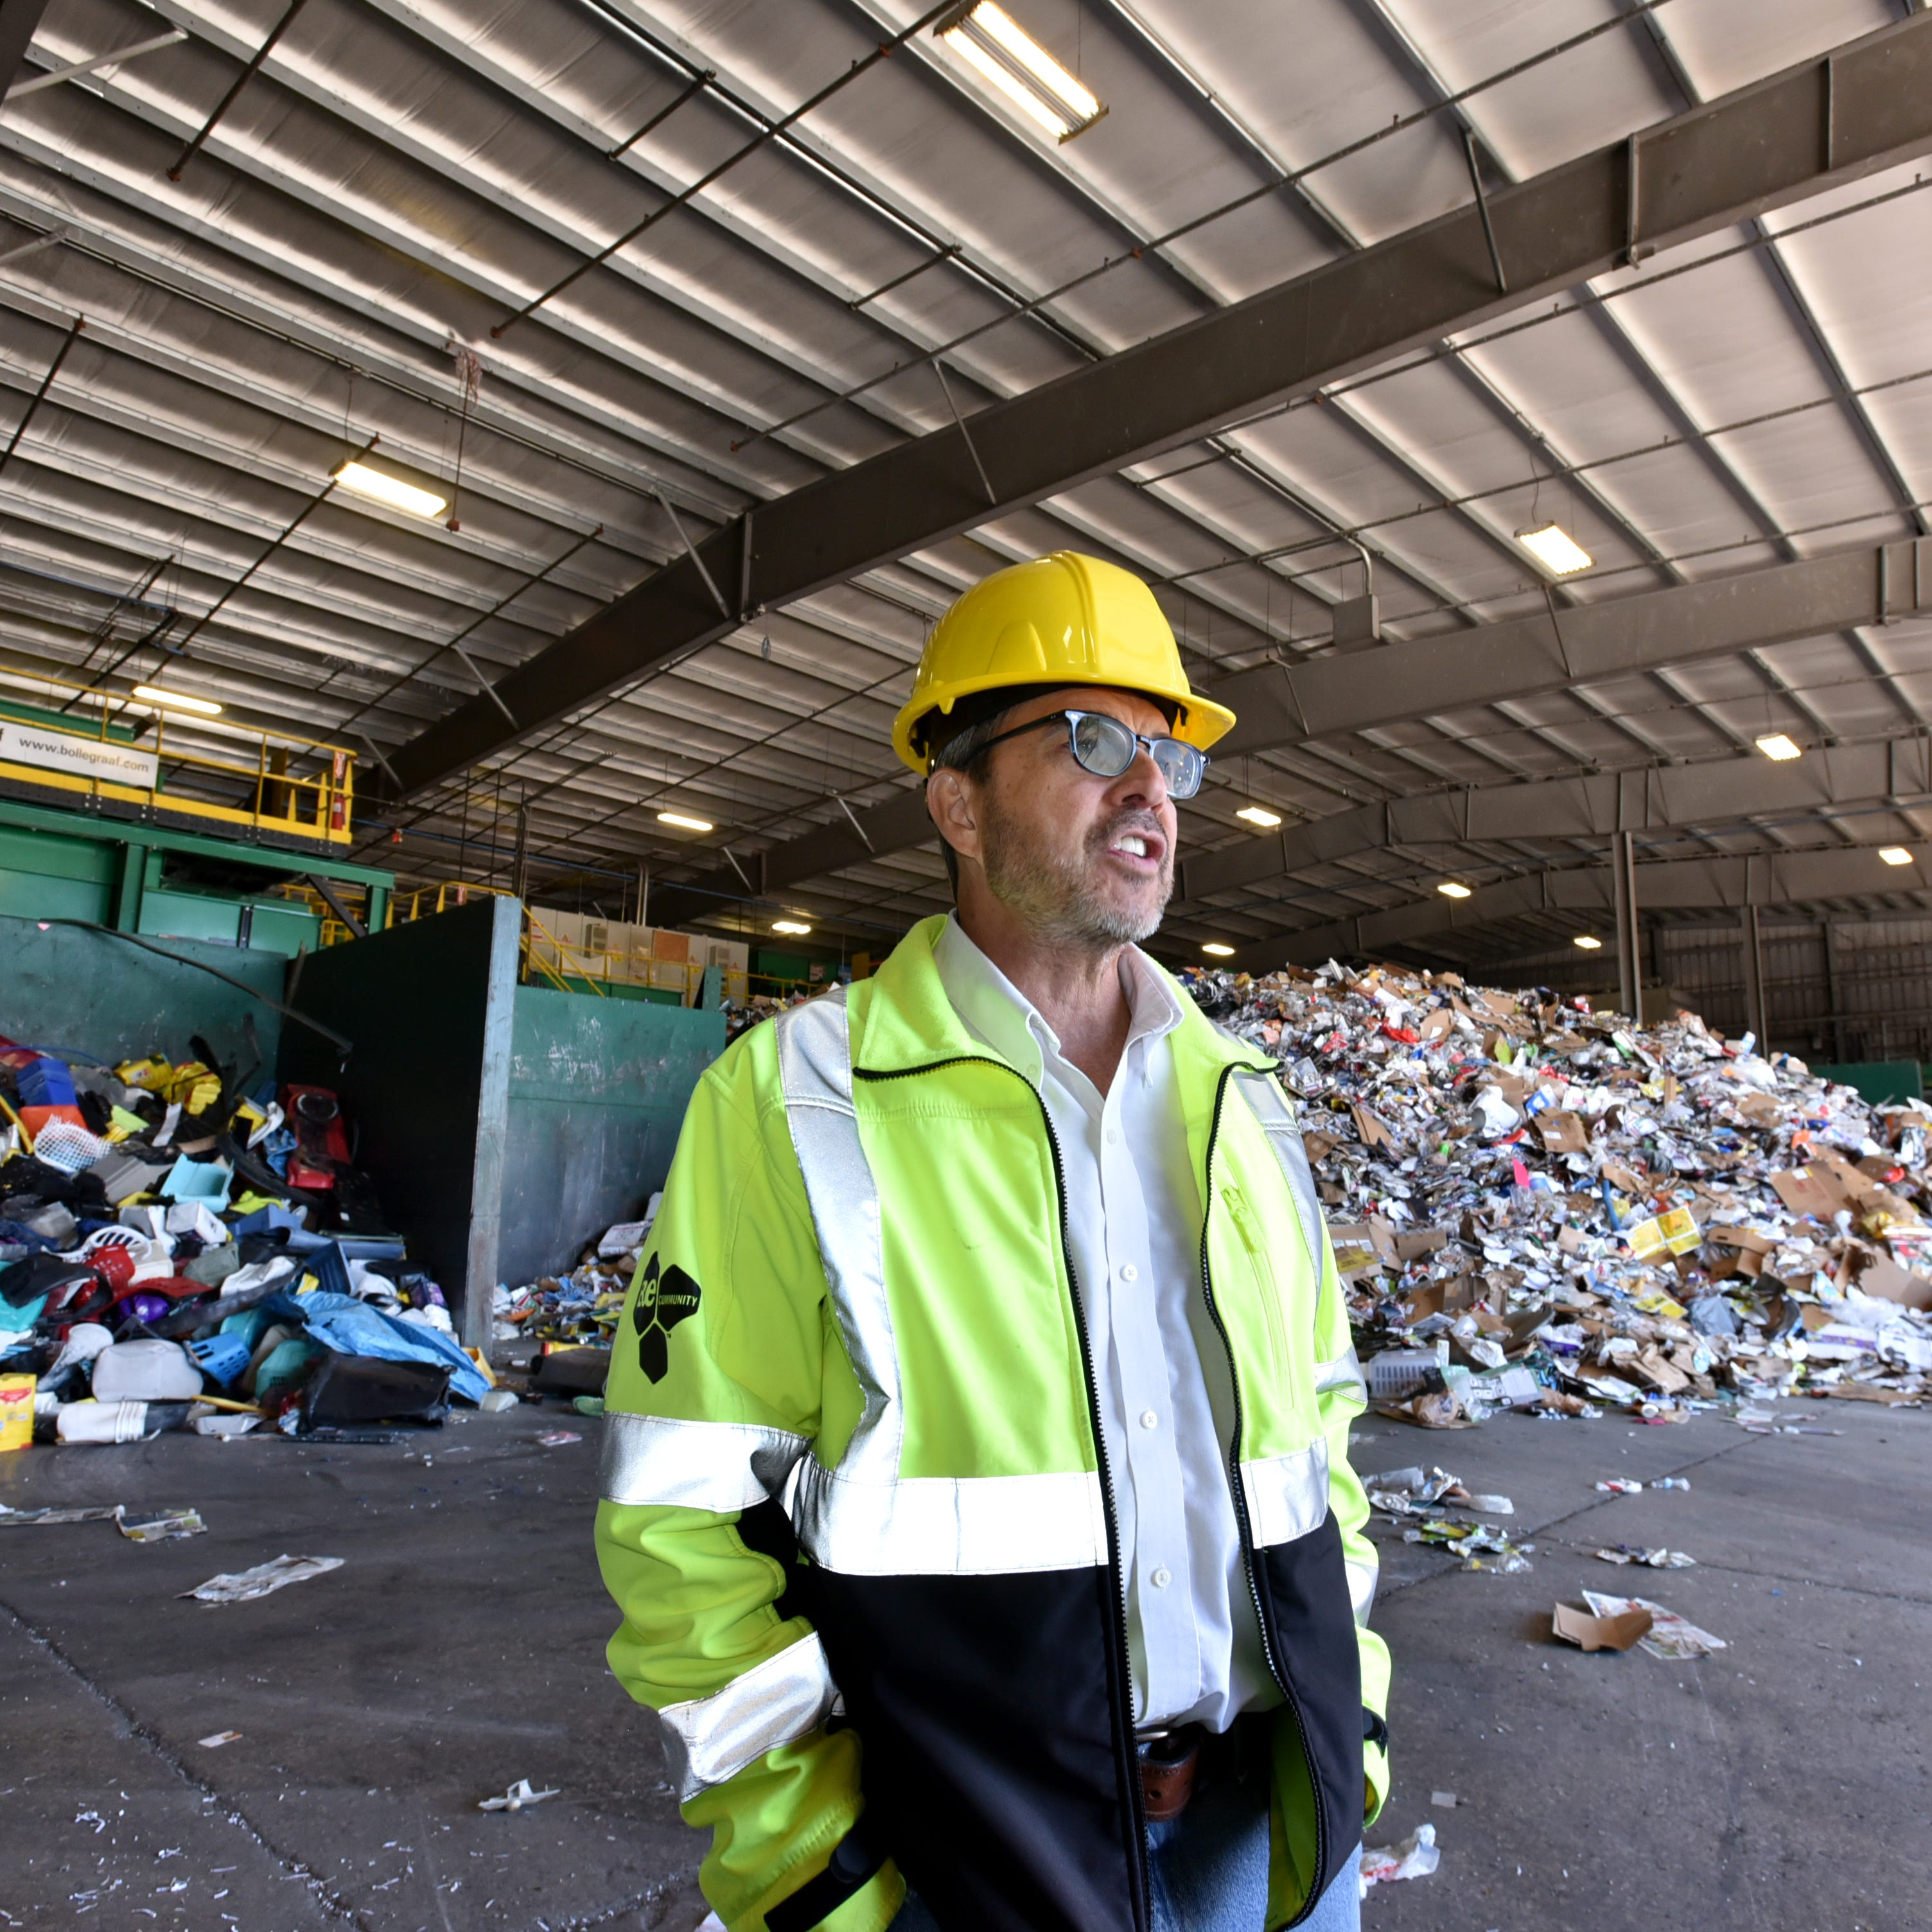 Here's where we are with recycling in Oakland County as costs rise and profits plummet